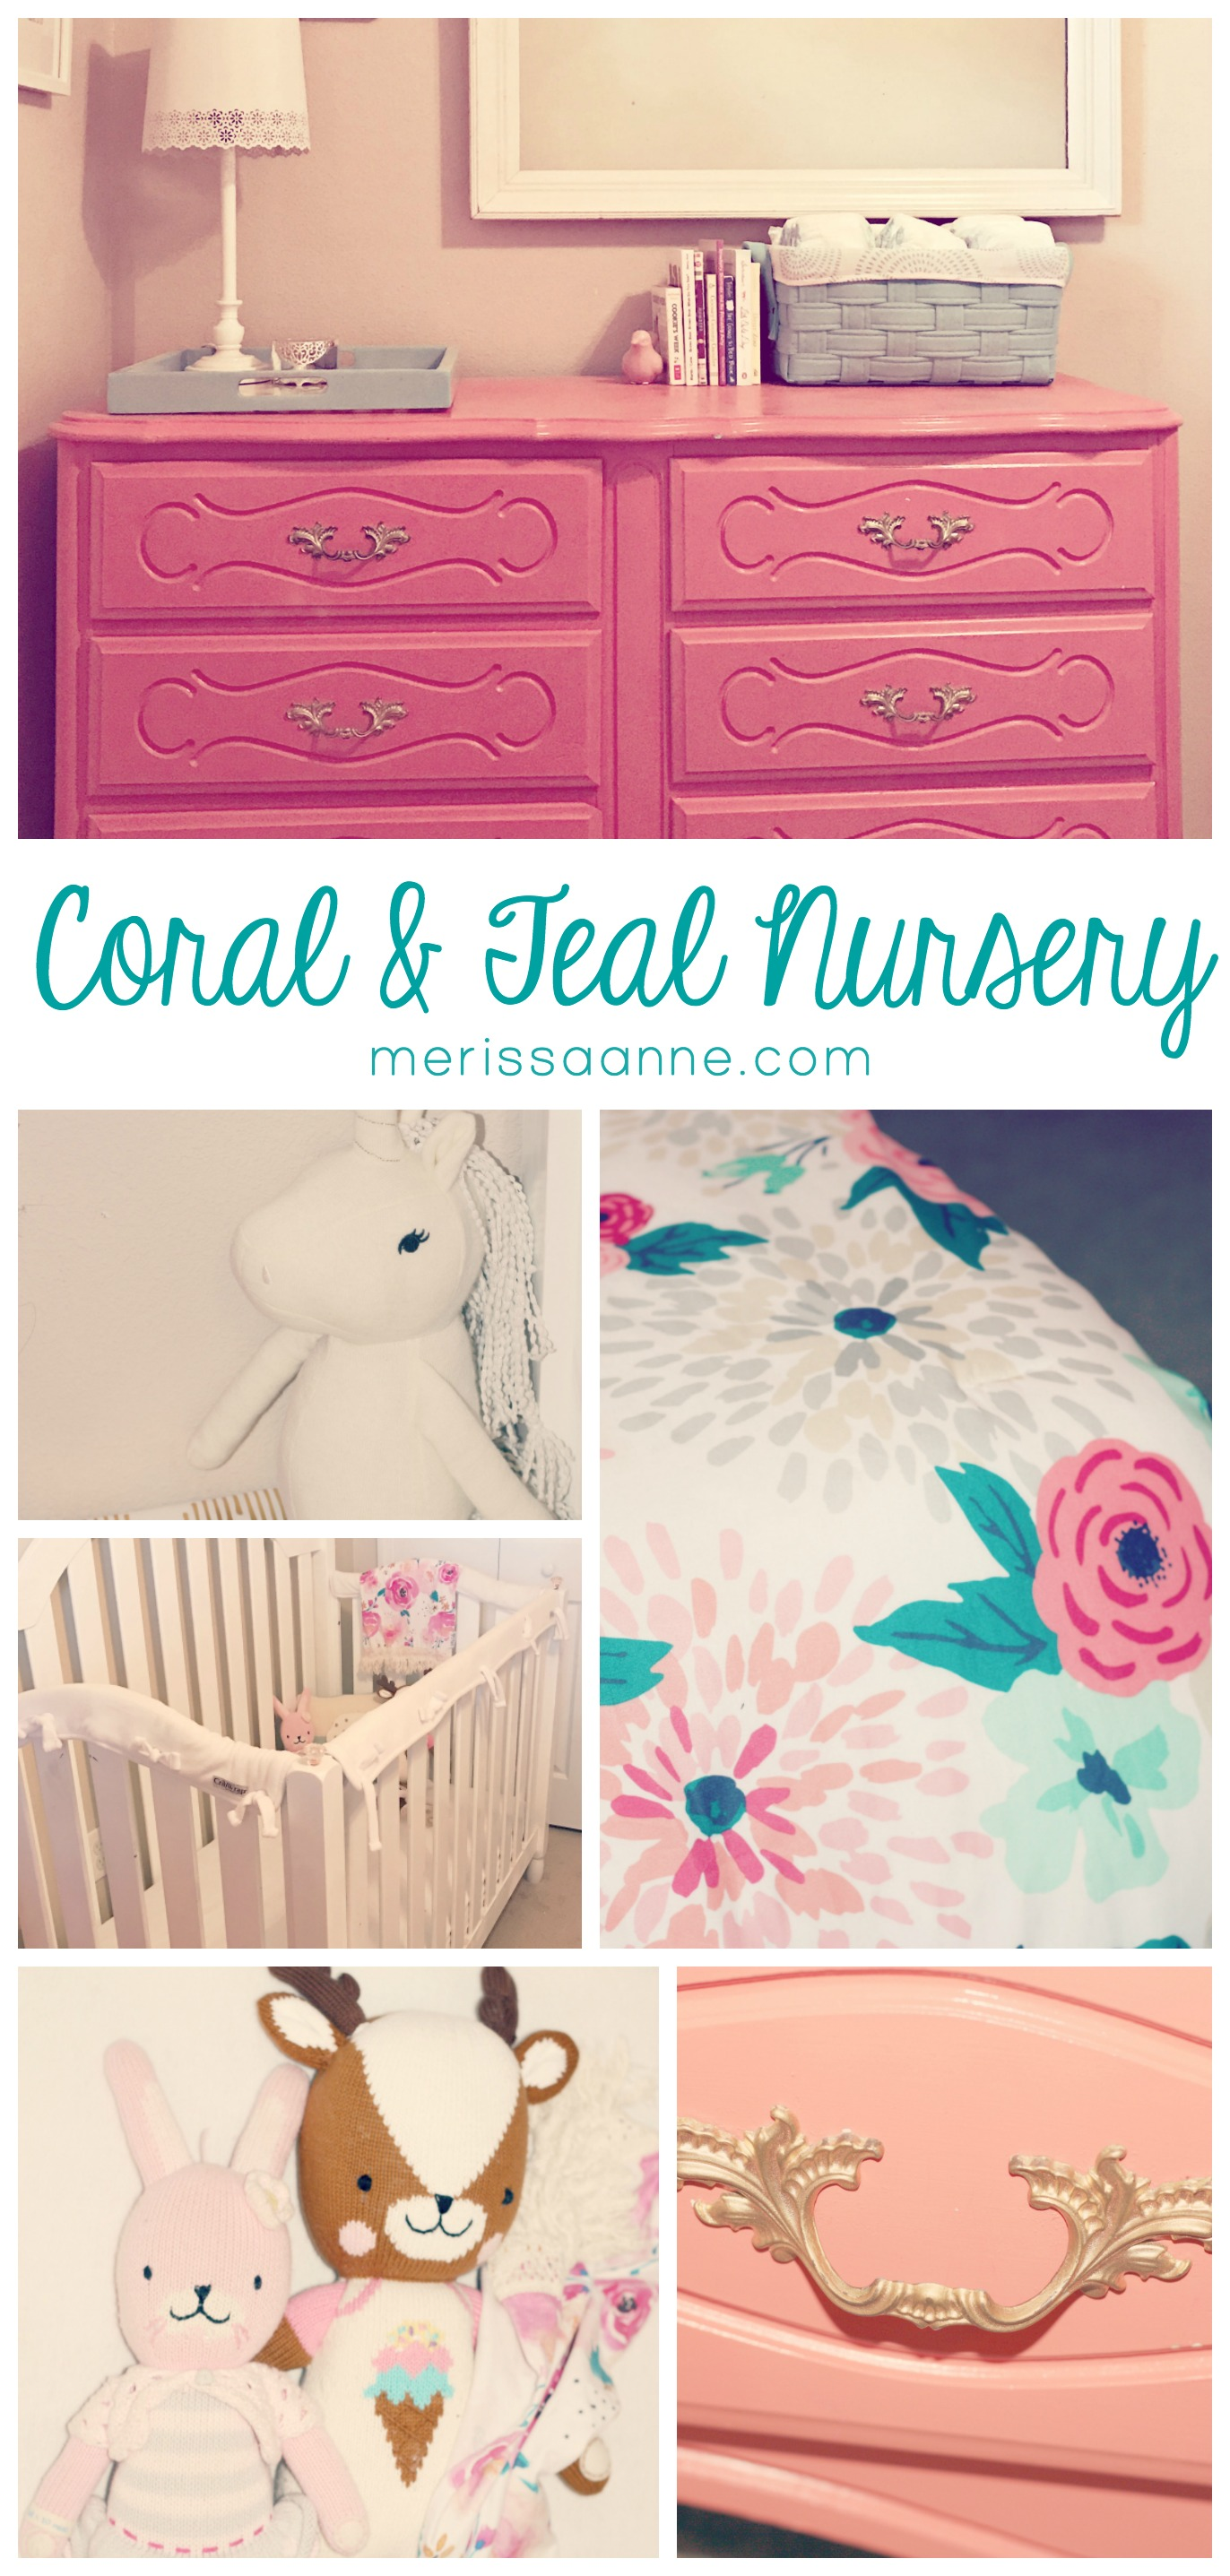 Madison's Coral and Teal Nursery